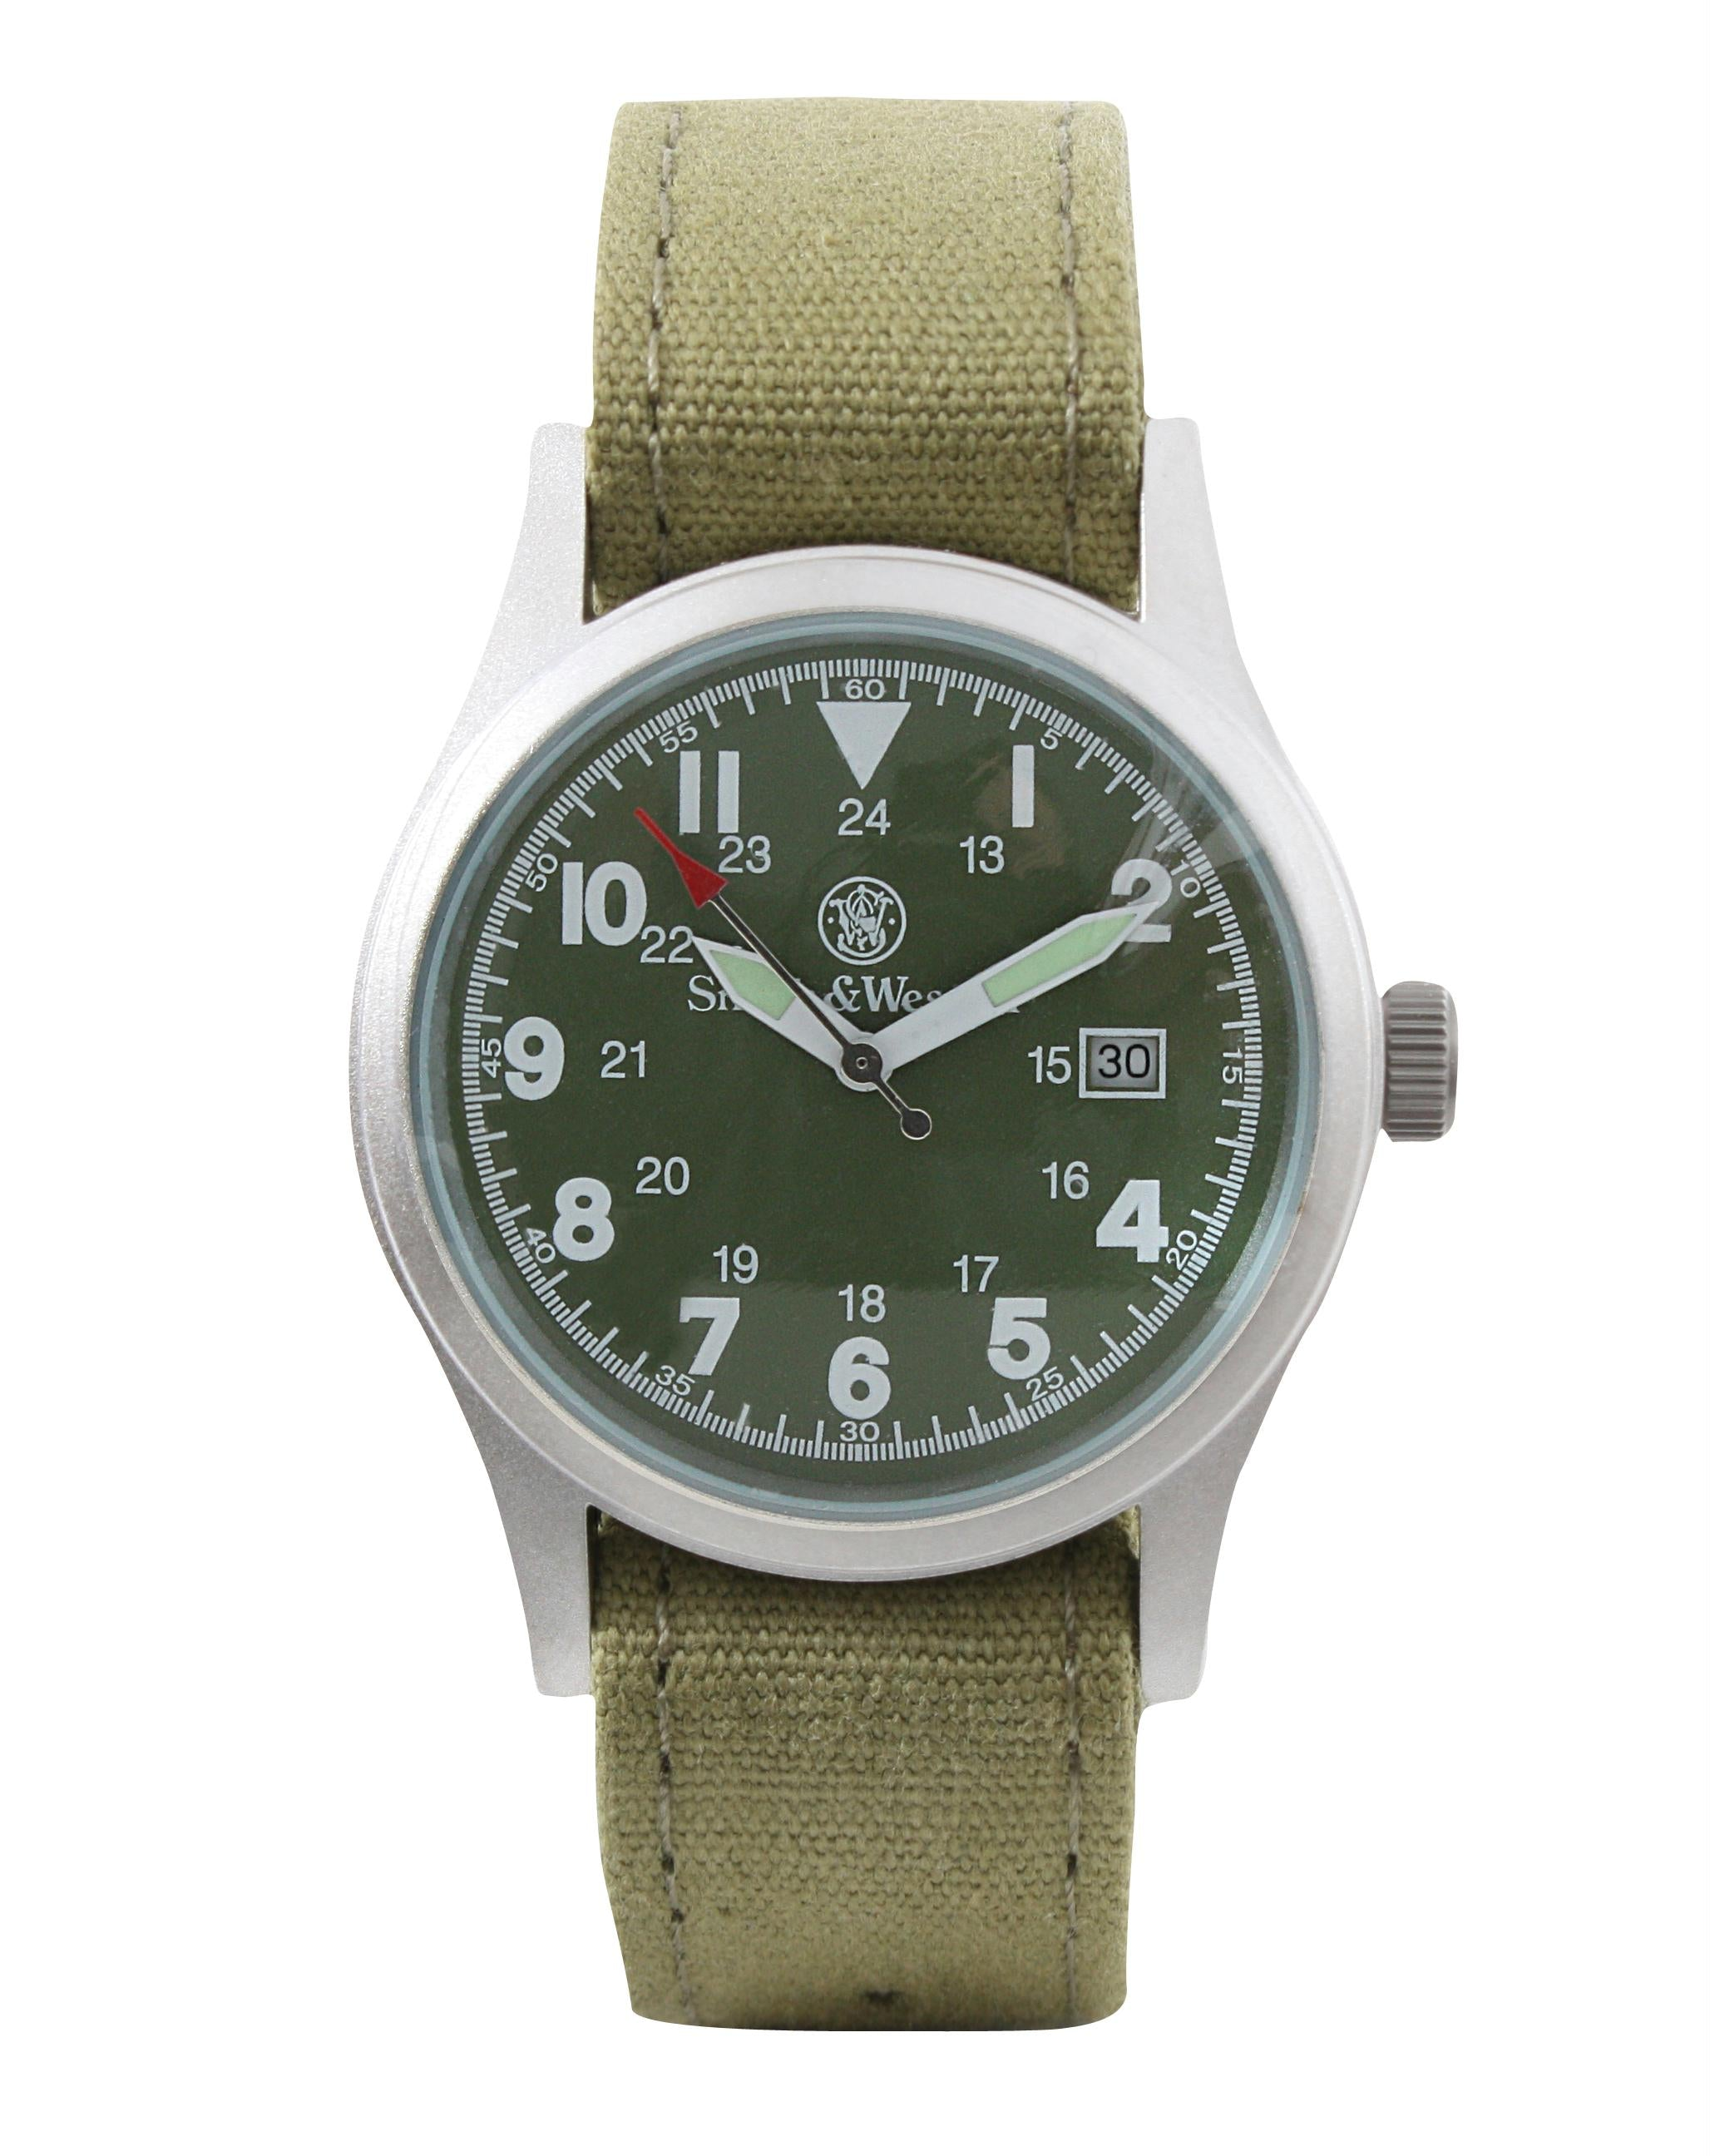 Smith & Wesson Military Watch Set - Olive Drab